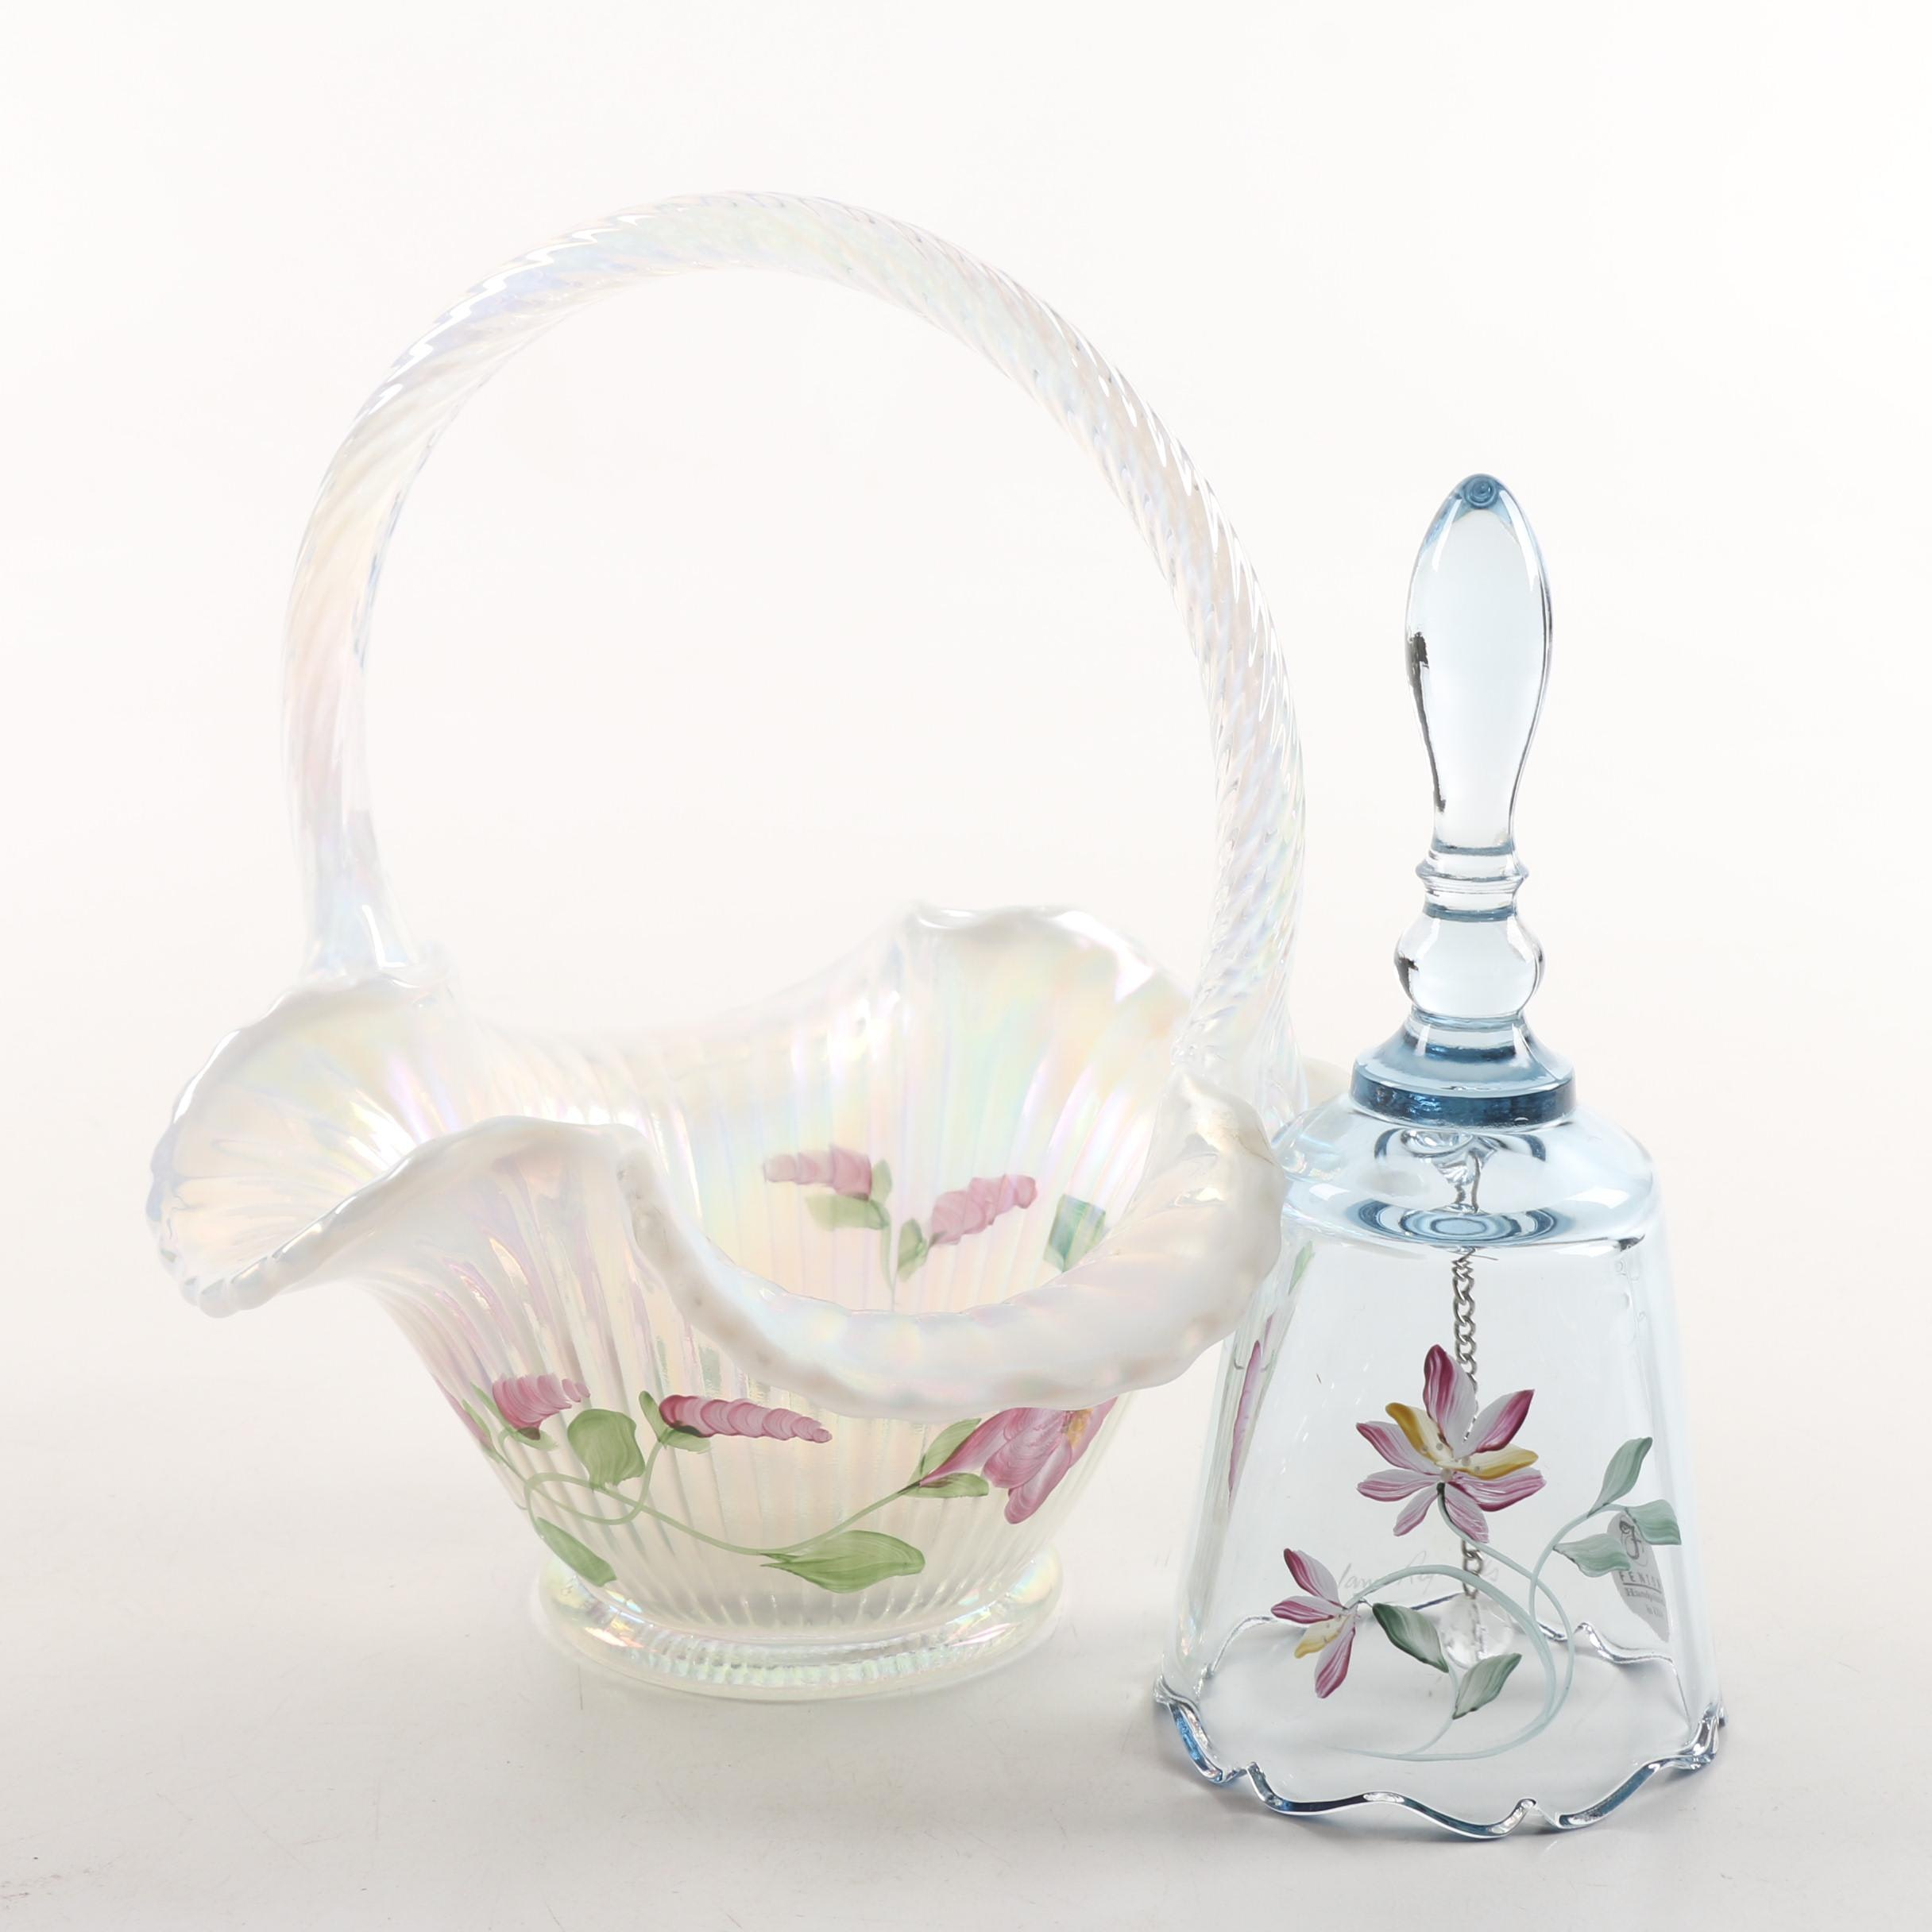 Fenton Glass Basket and Signed Hand-Painted Bell